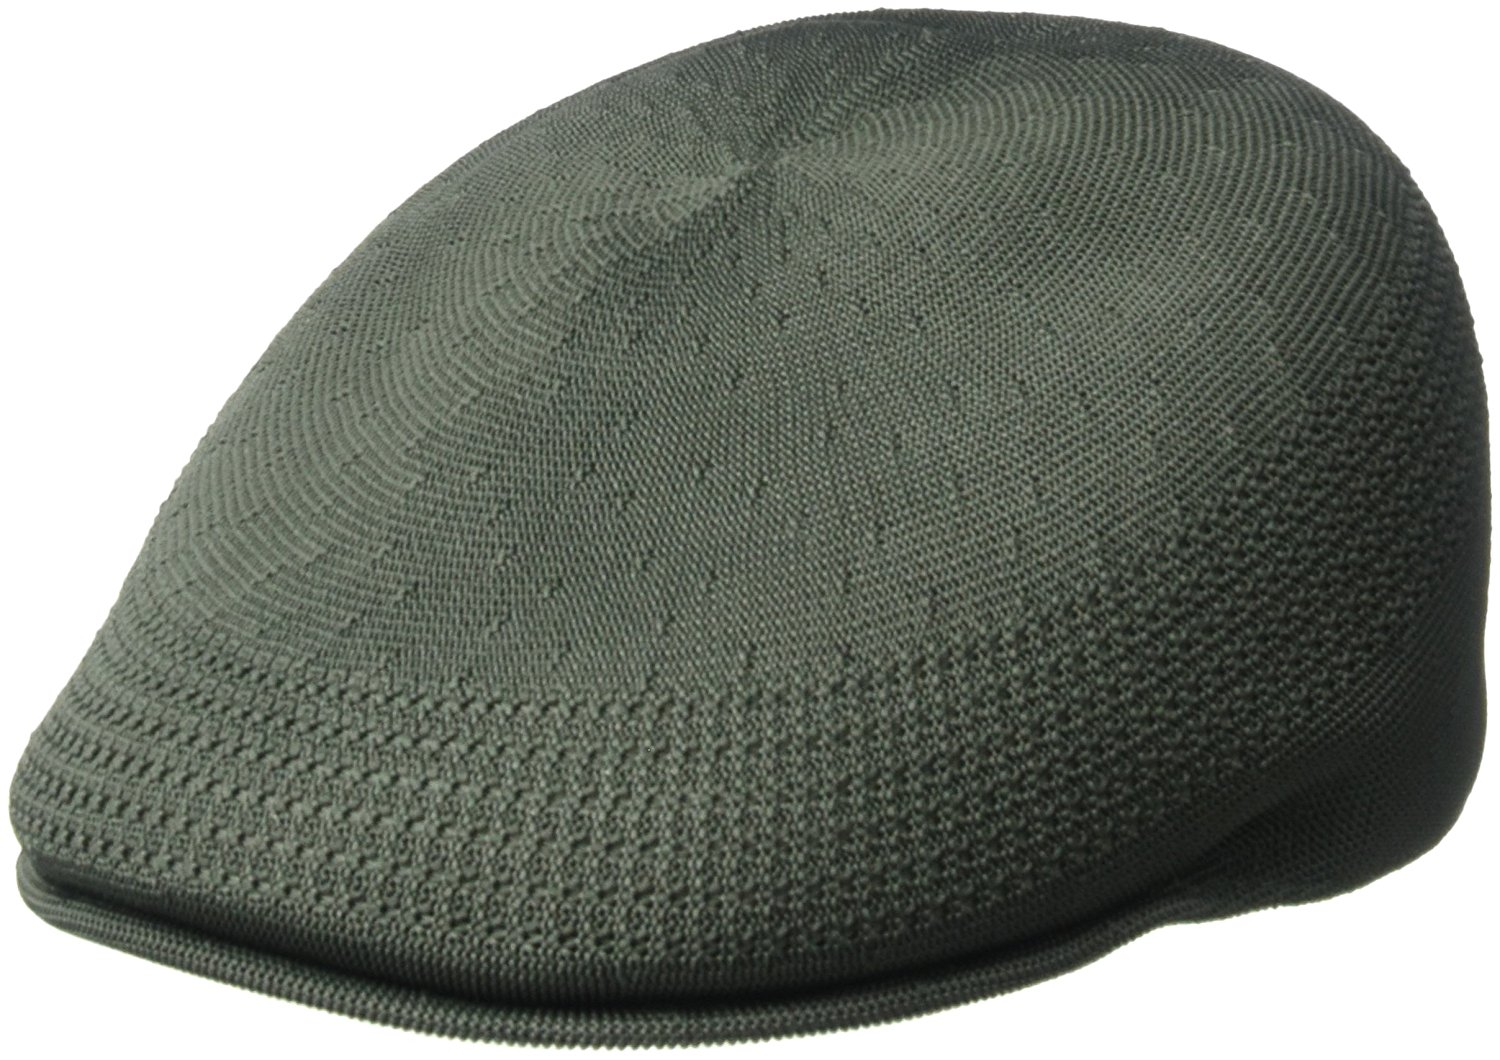 171f7de3 Cheap Kangol Ivy Cap, find Kangol Ivy Cap deals on line at Alibaba.com